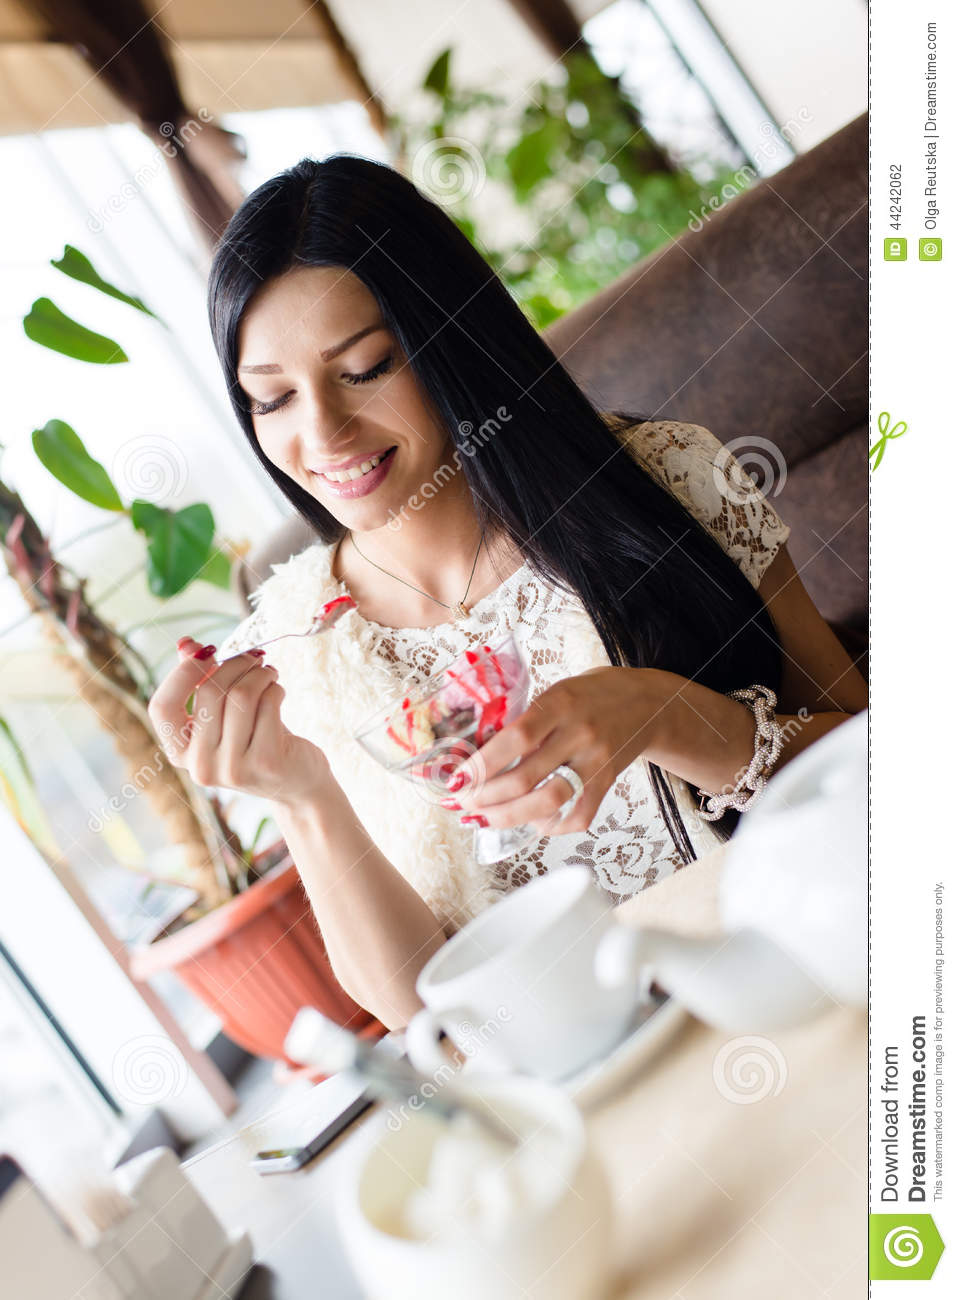 Portrait of beautiful young happy smiling woman having fun eating ice cream in coffee shop or restaurant